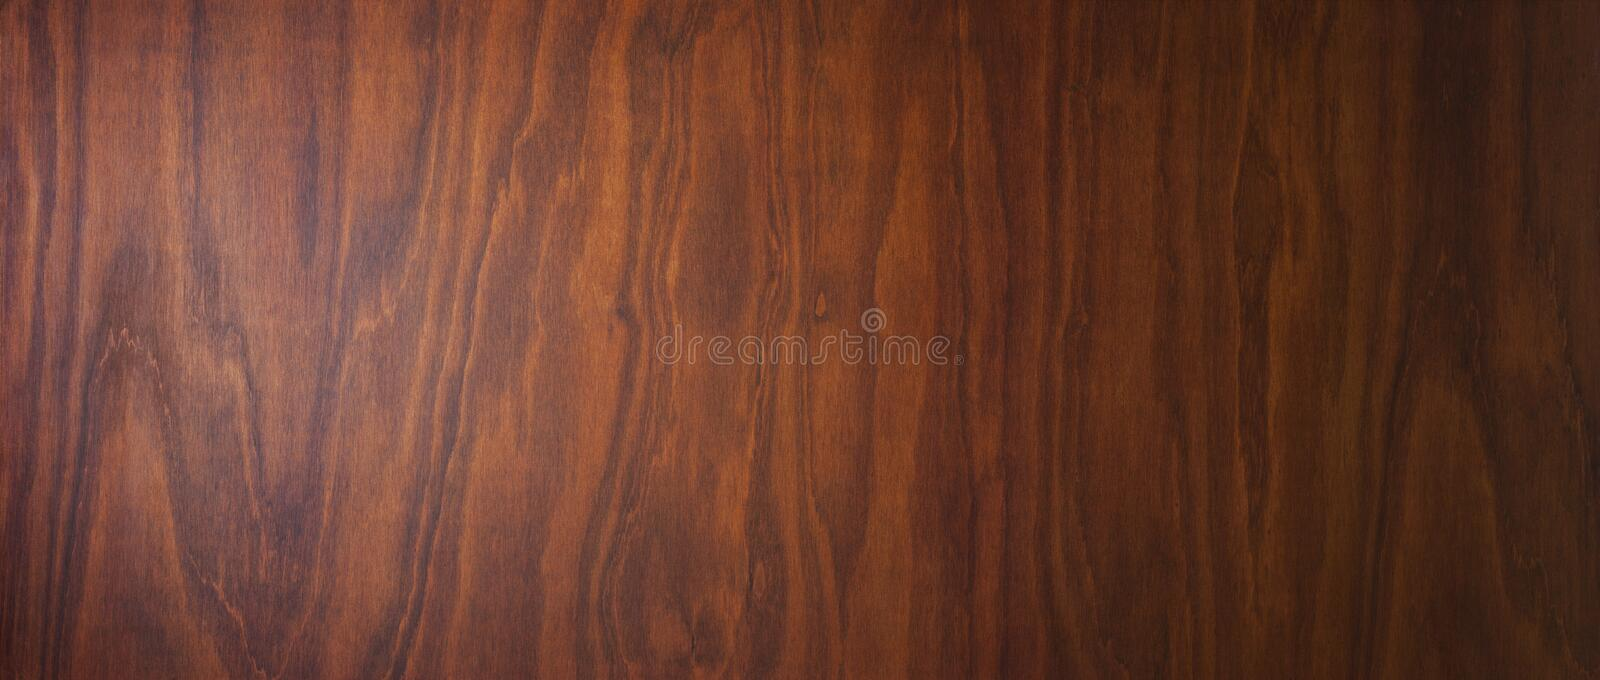 Download Wood Banner Background stock image. Image of backgrounds - 38044421